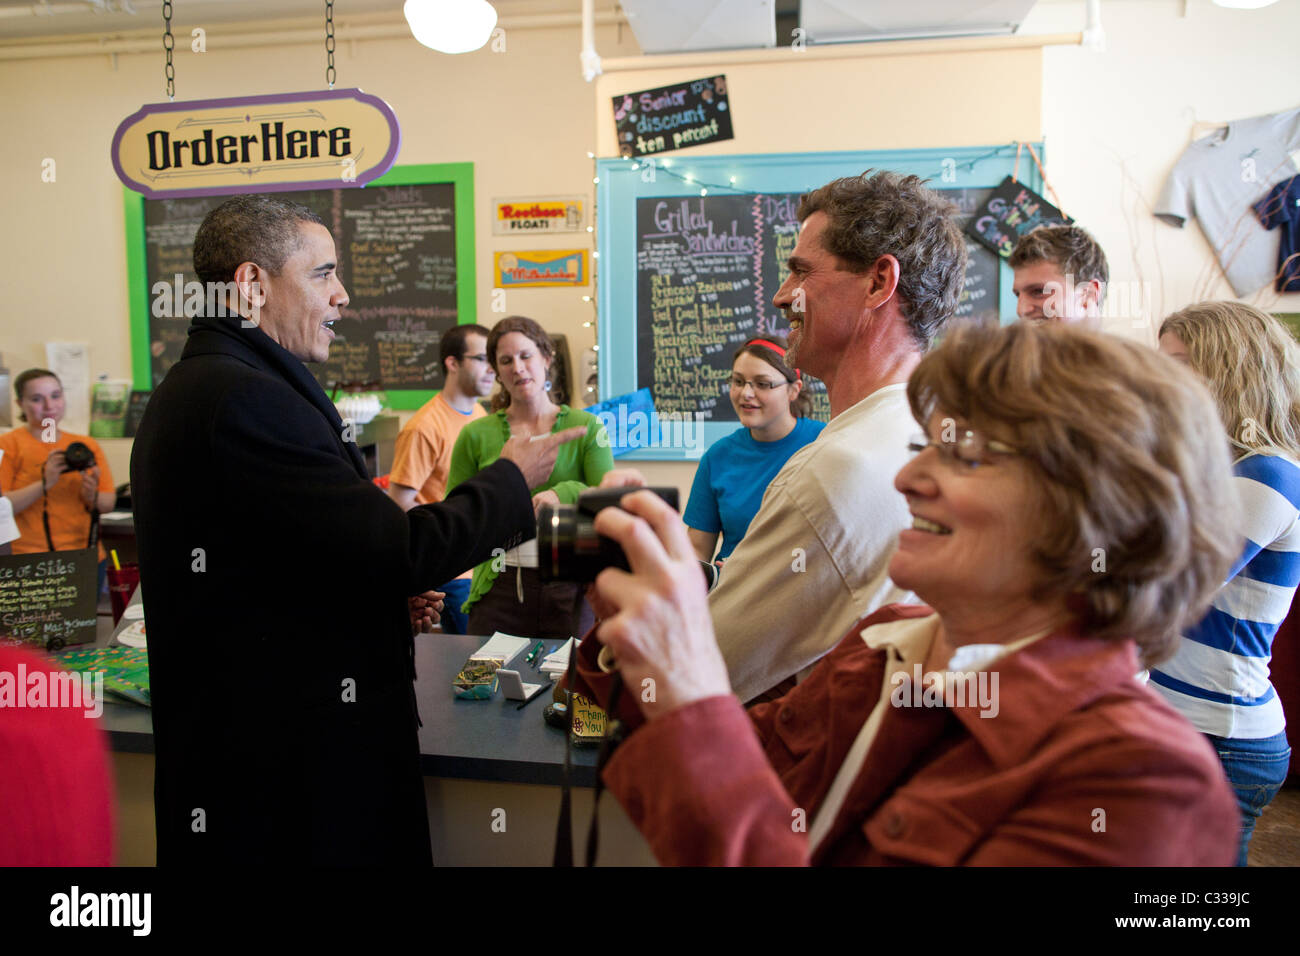 President Barack Obama greets patrons and employees during a stop at Donckers in Marquette, Mich., Feb. 10, 2011. - Stock Image